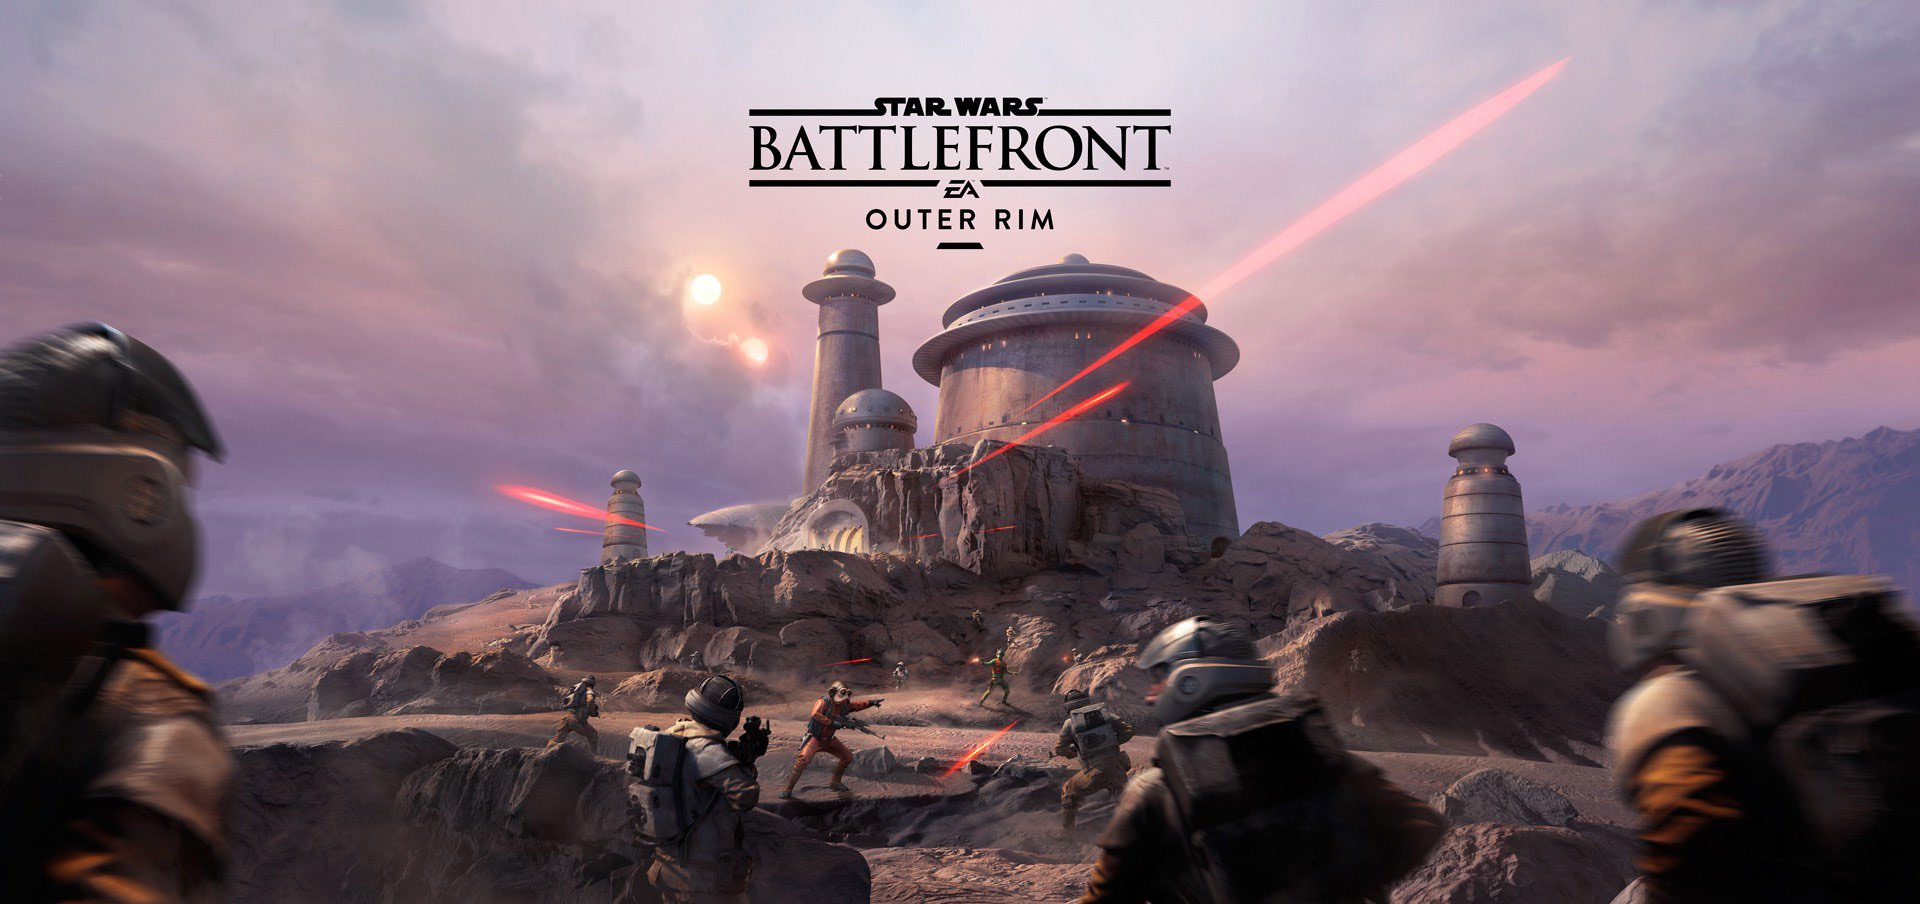 DLC Outer Rim do Star Wars Battlefront